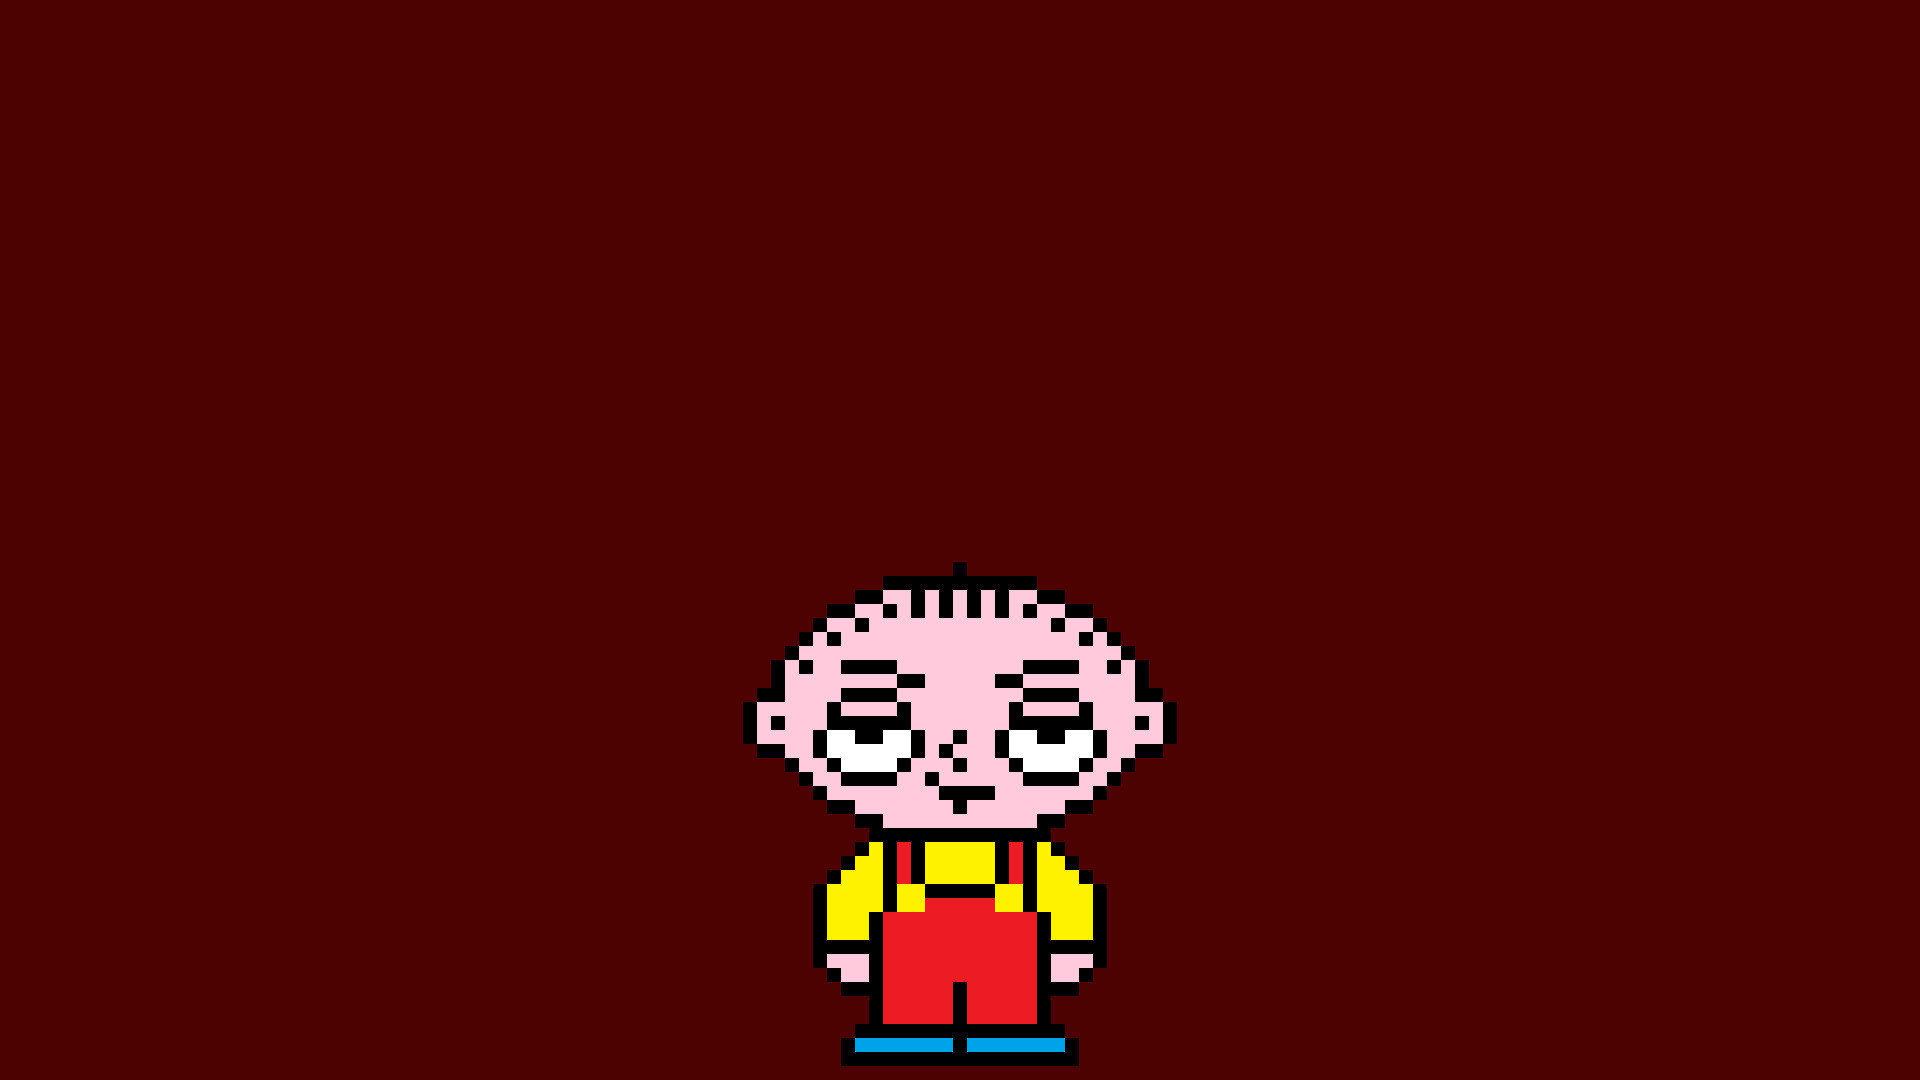 1920x1080 Stewie Griffin, Pixel art, Pixels, The family guy Wallpapers HD / Desktop  and Mobile Backgrounds